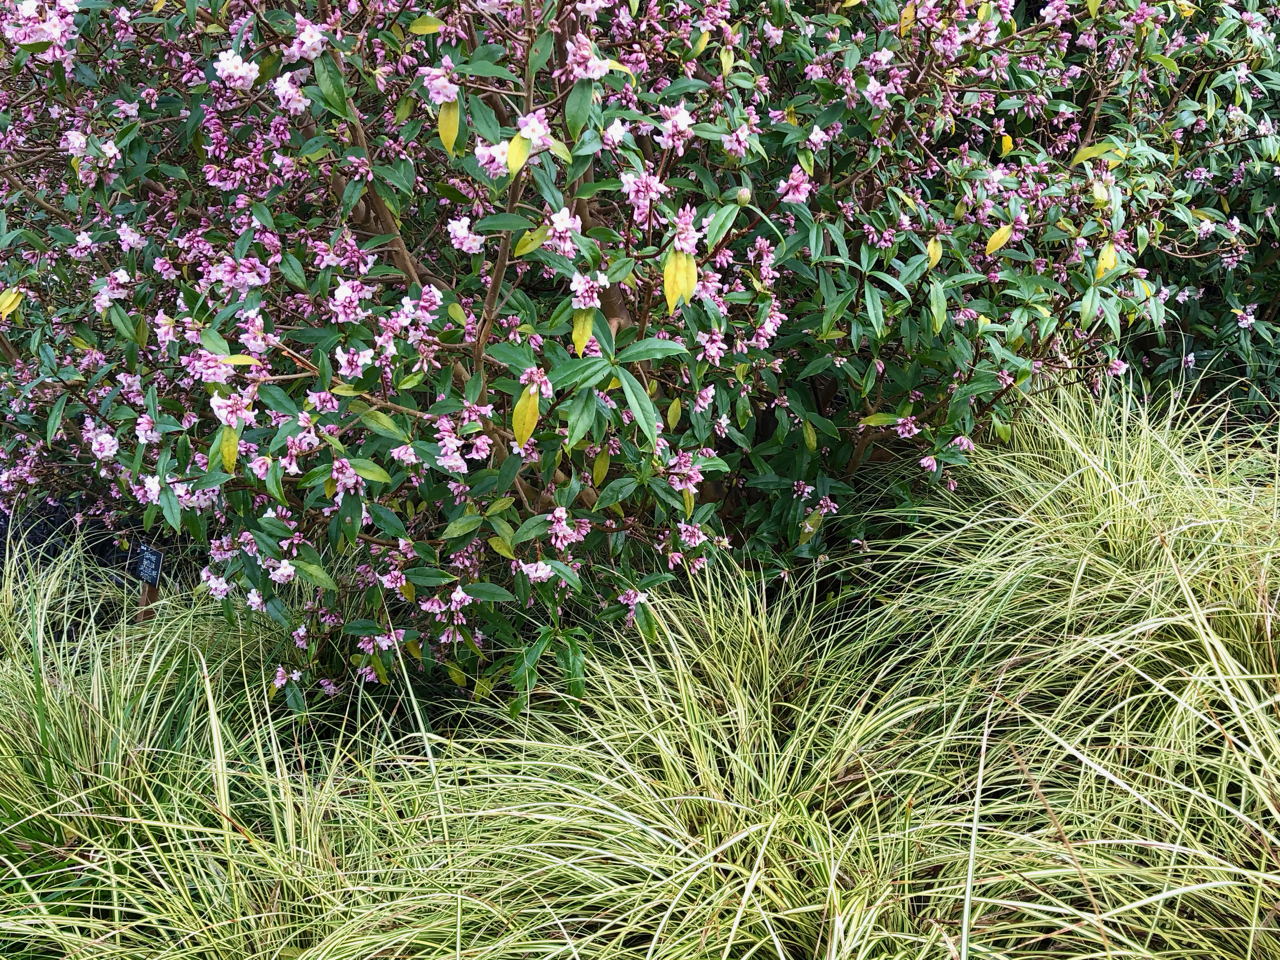 Carex oshimensis Evergold wrapping around a Daphne bohlua Jacqueline Postiill